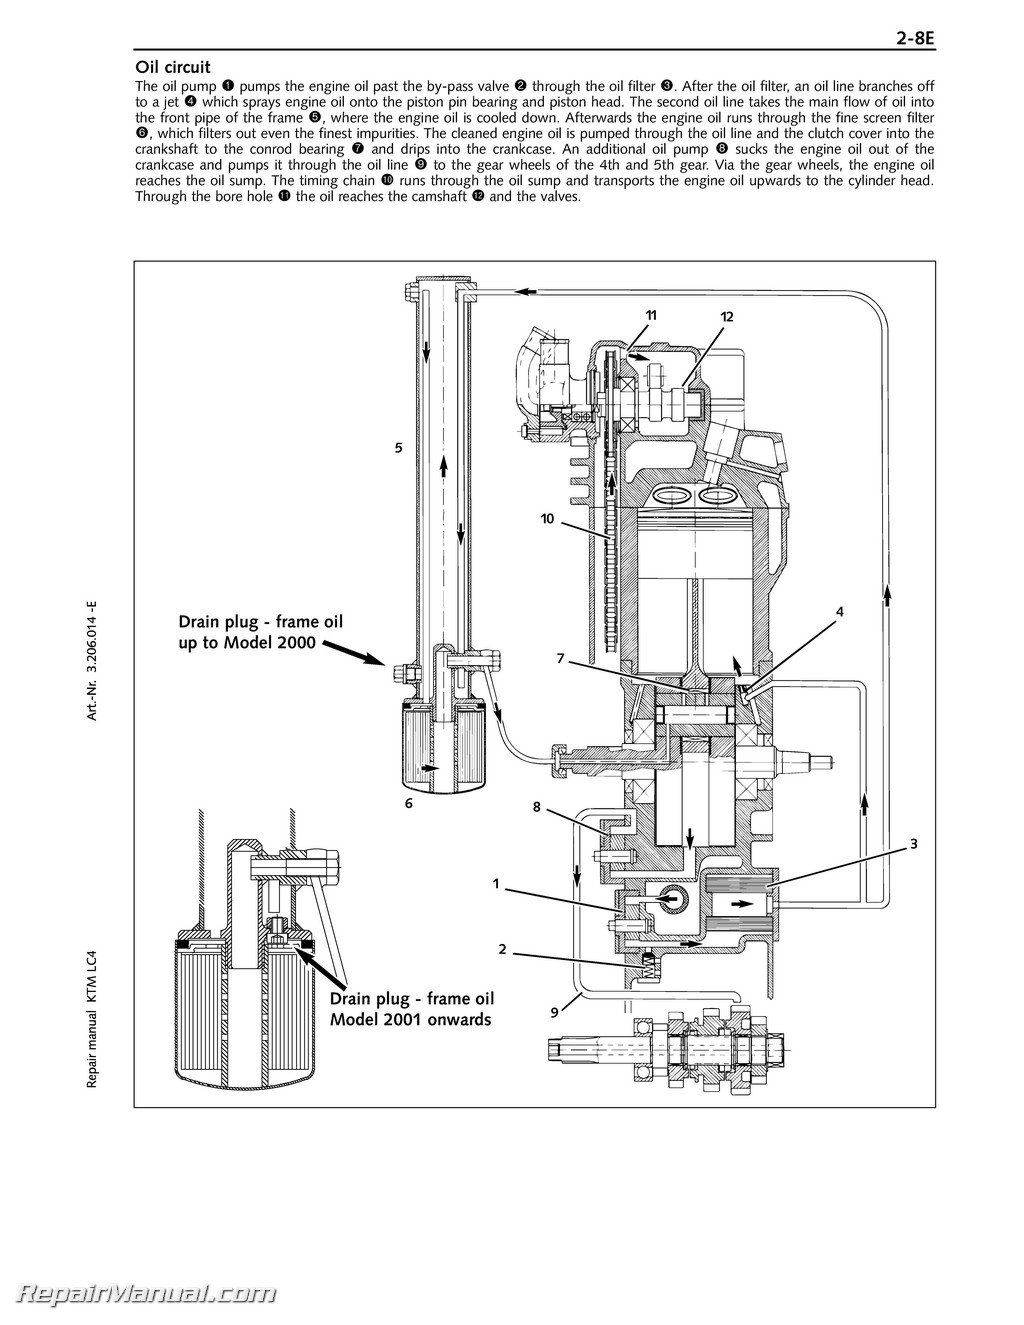 kohler marine generator parts manual 8cc0